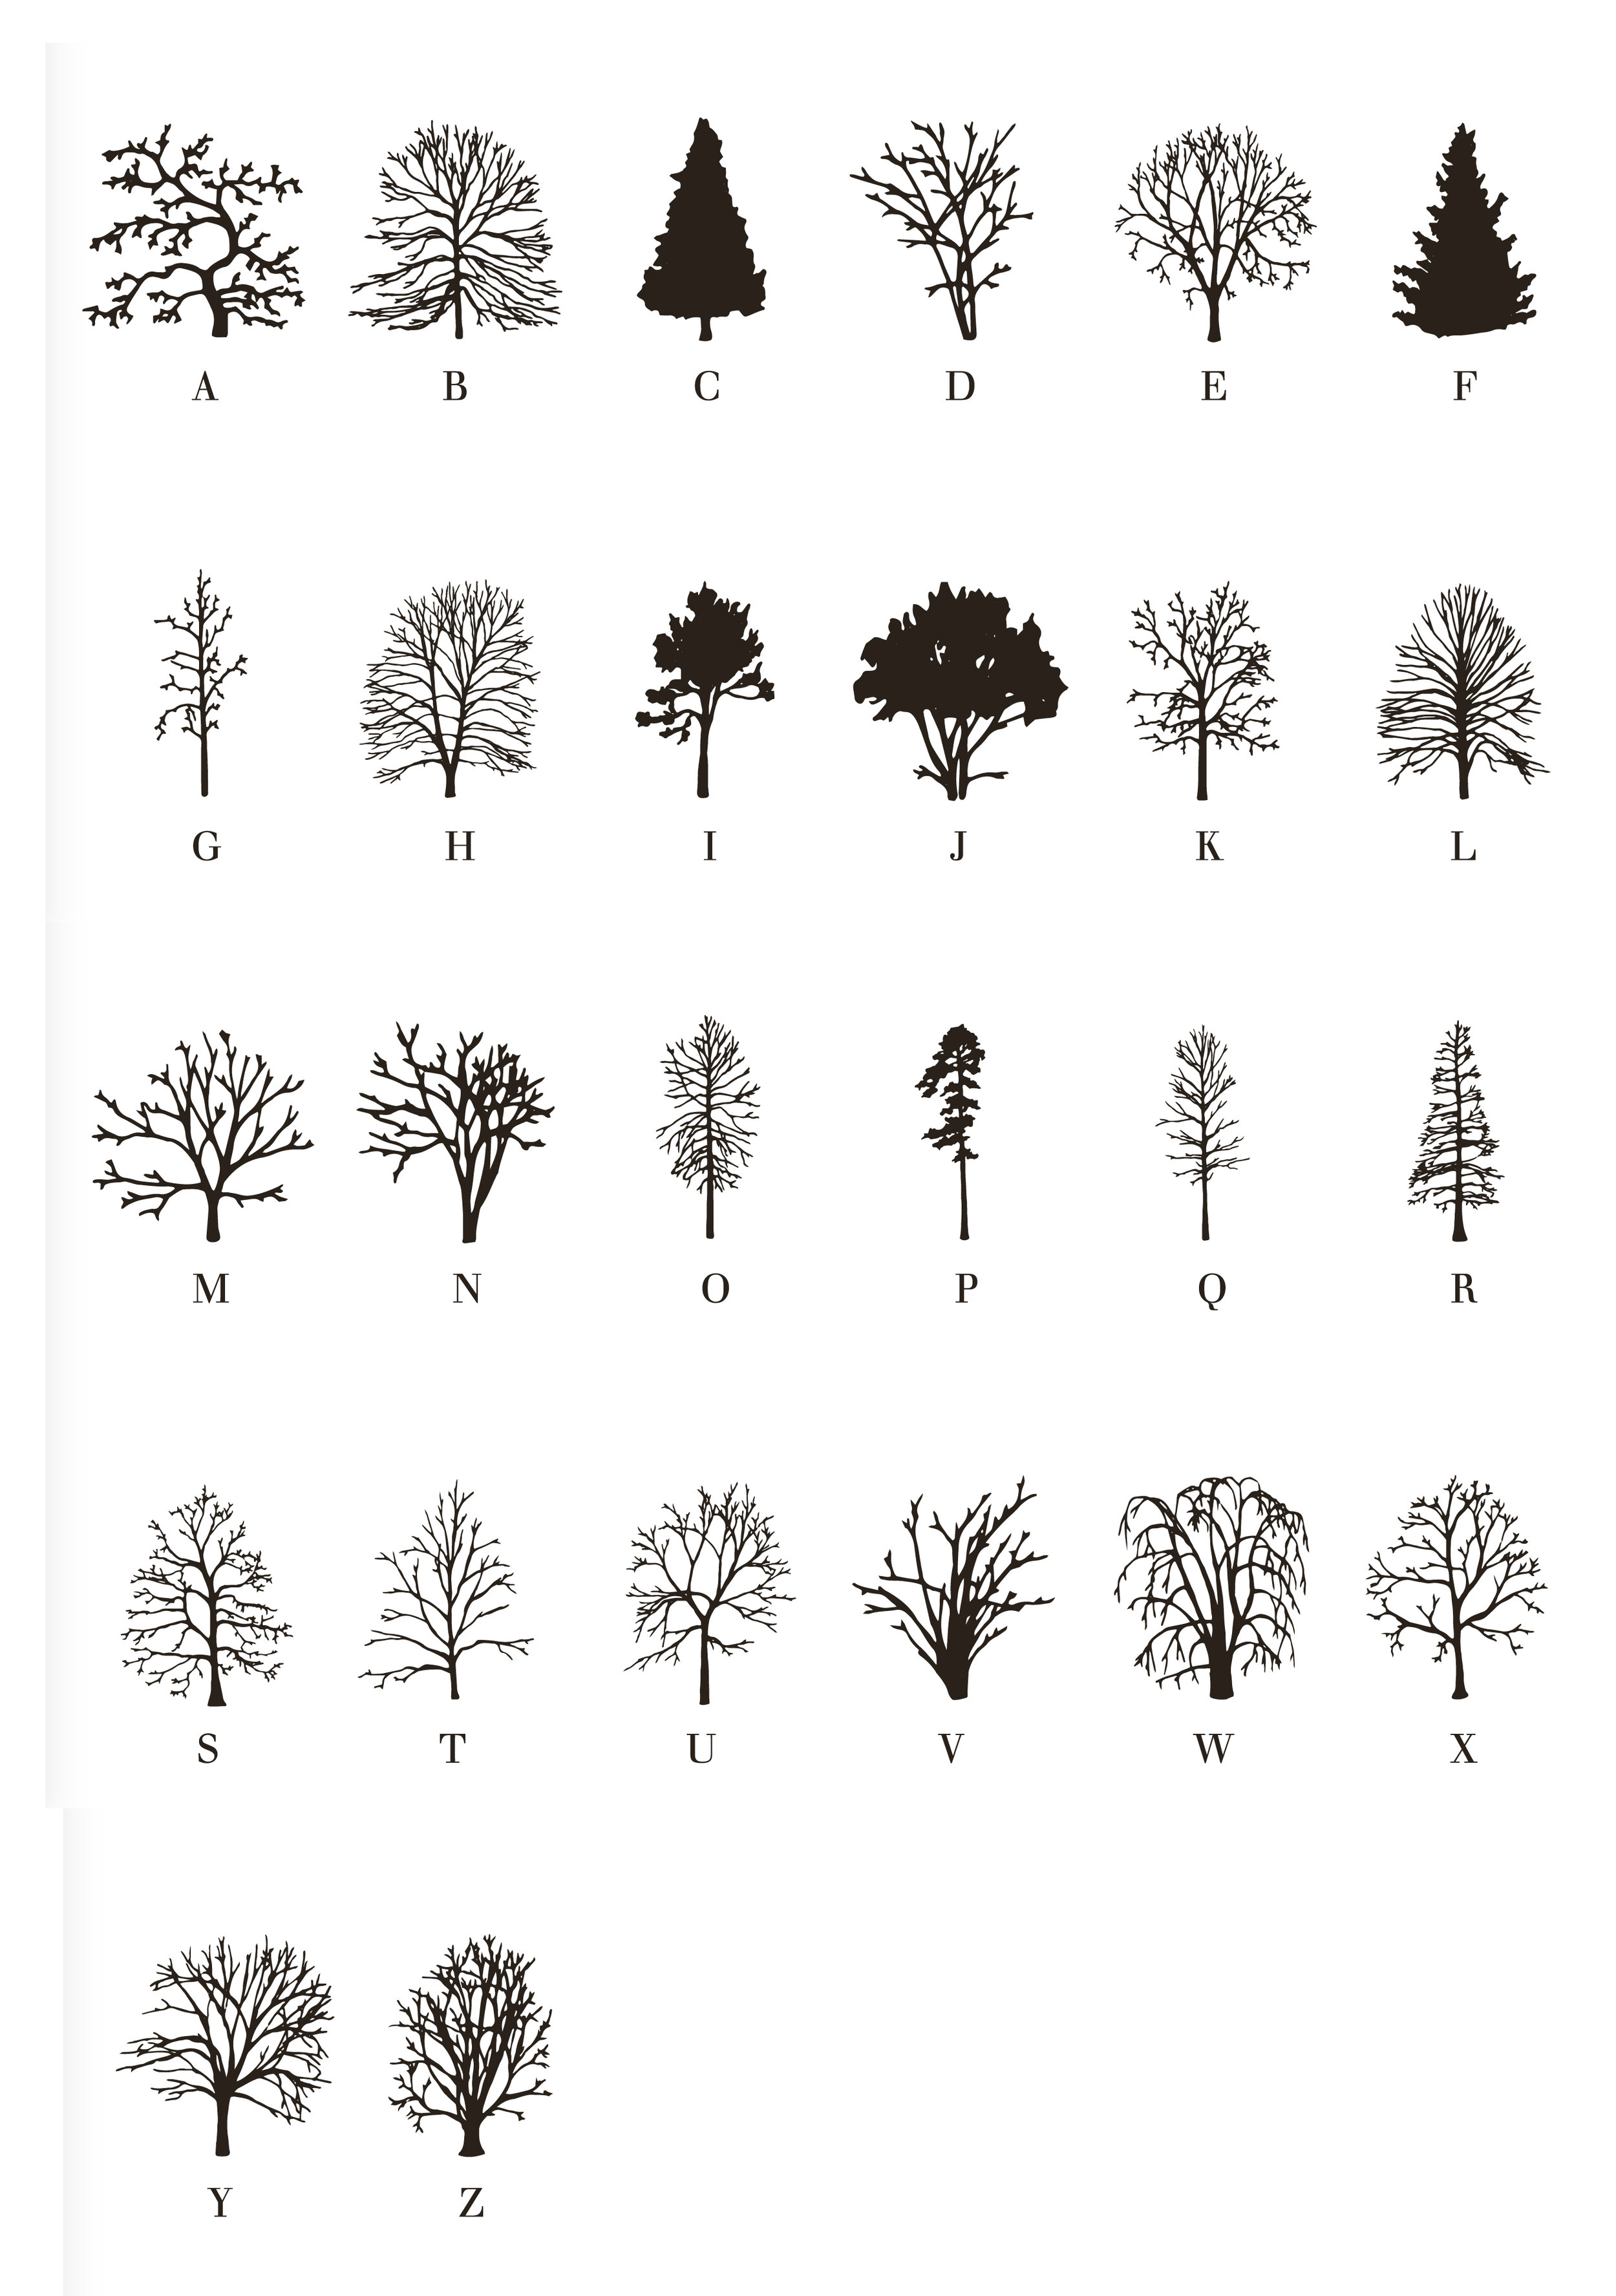 Trees Typeface, 2015, handmade offset print on paper, 308gm, 50 x 70 cm, edition of 50. Signed, numbered and dated by the artist.  Buy prints here.